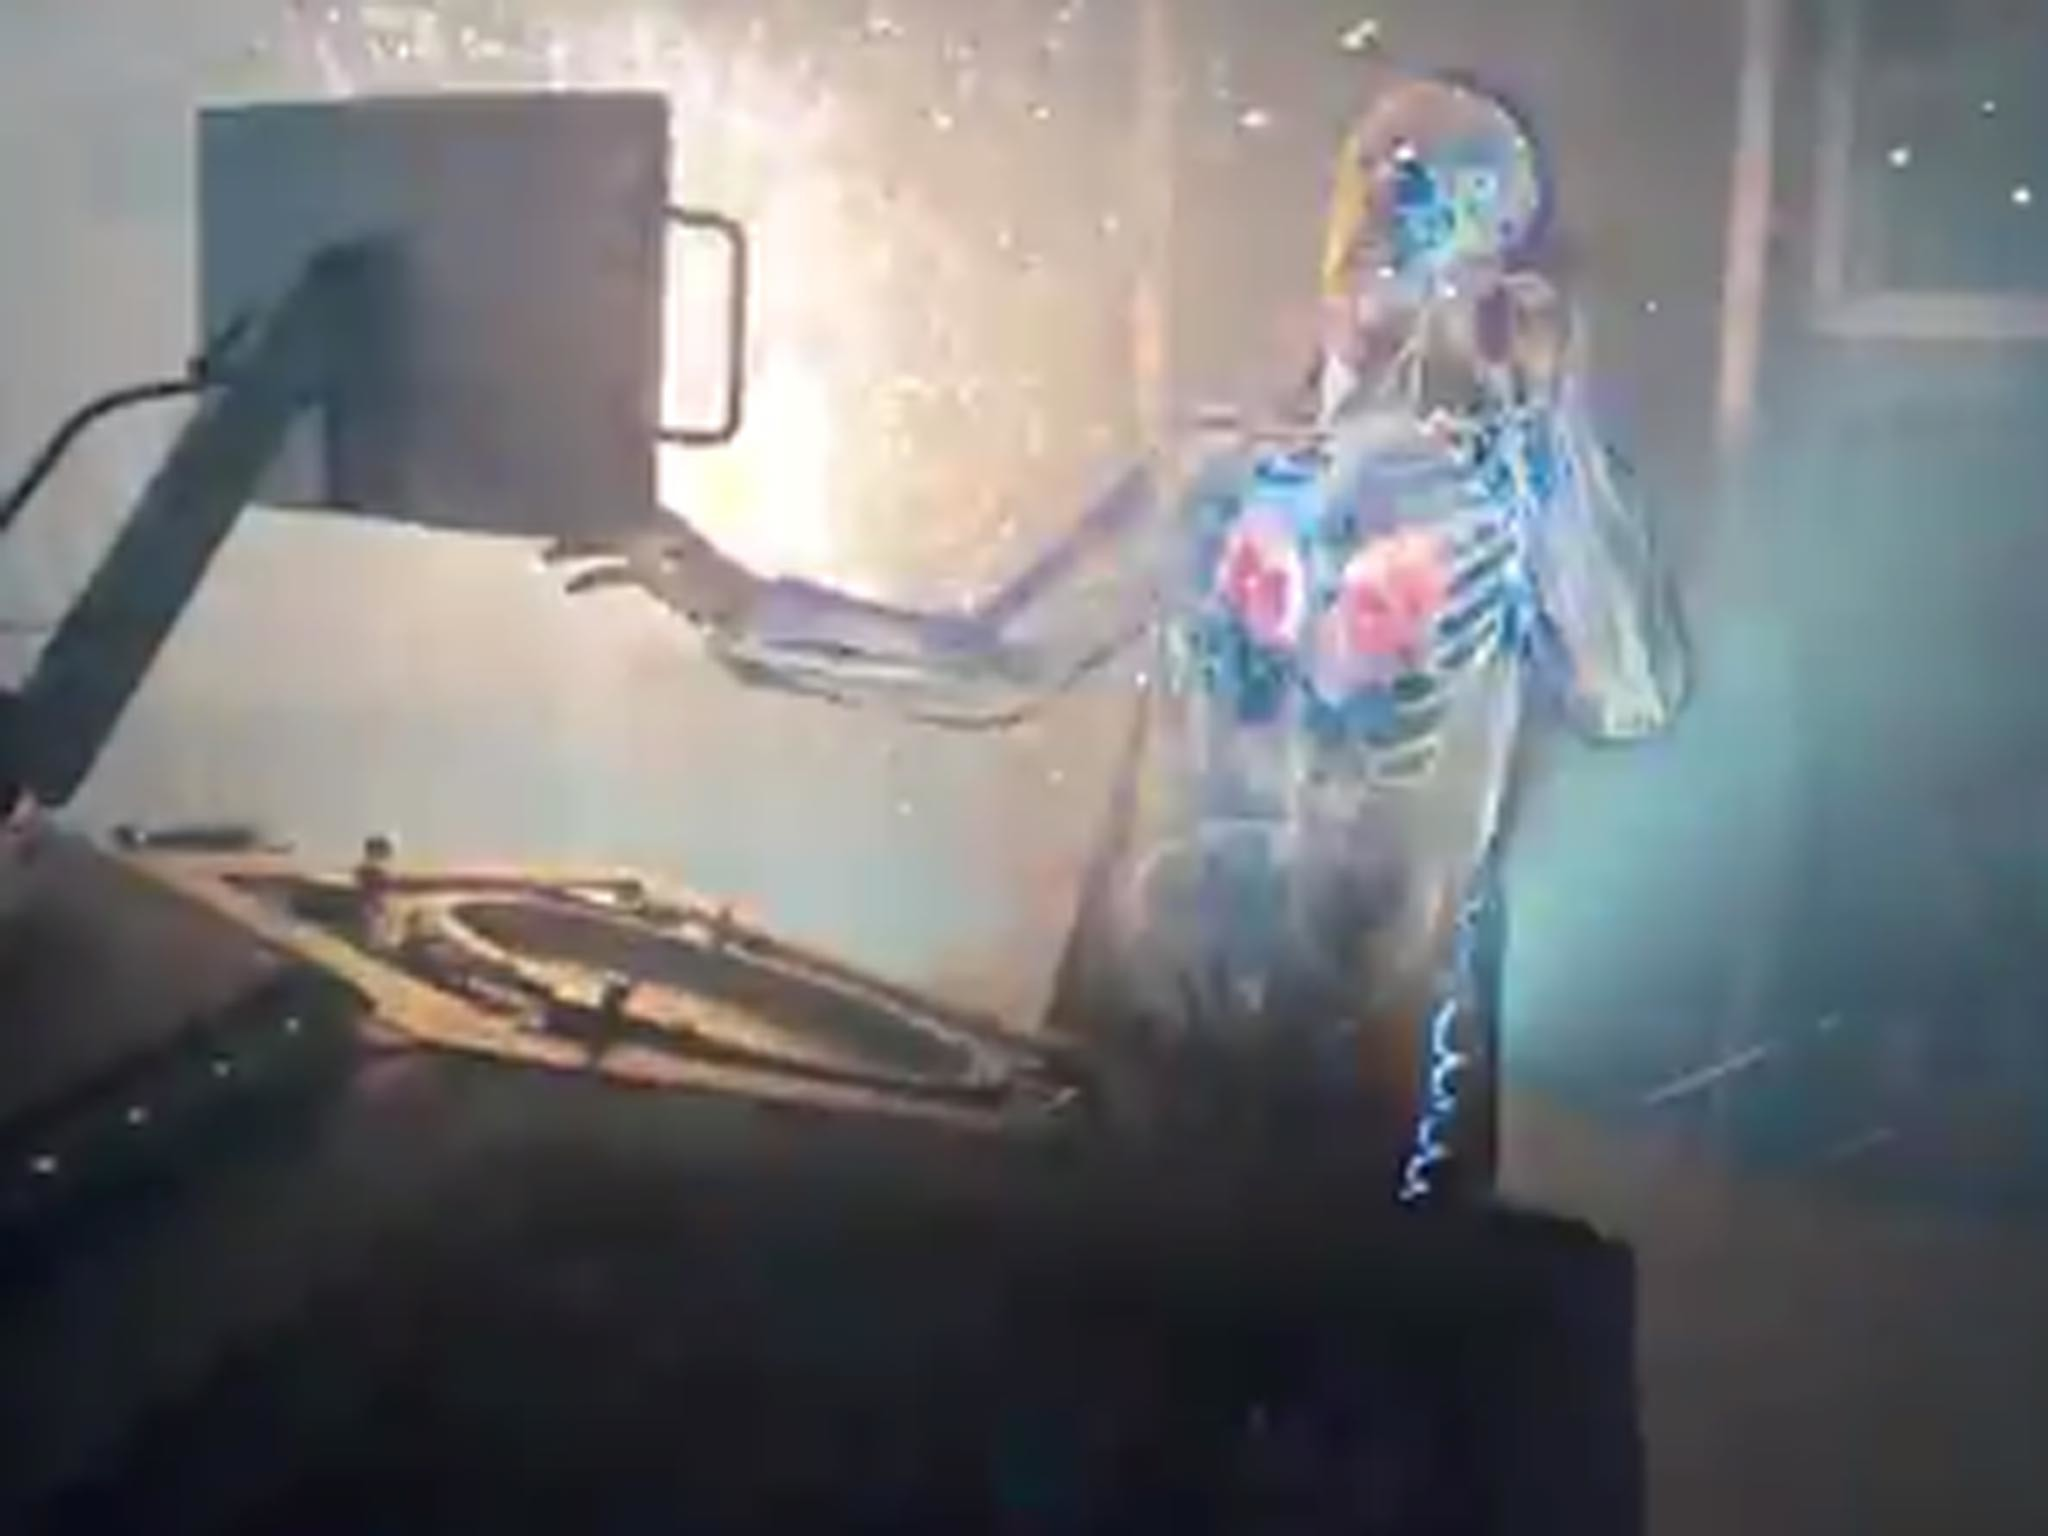 Doctor Who series 8: New trailer hints at the return of the Daleks and  Davros | The Independent